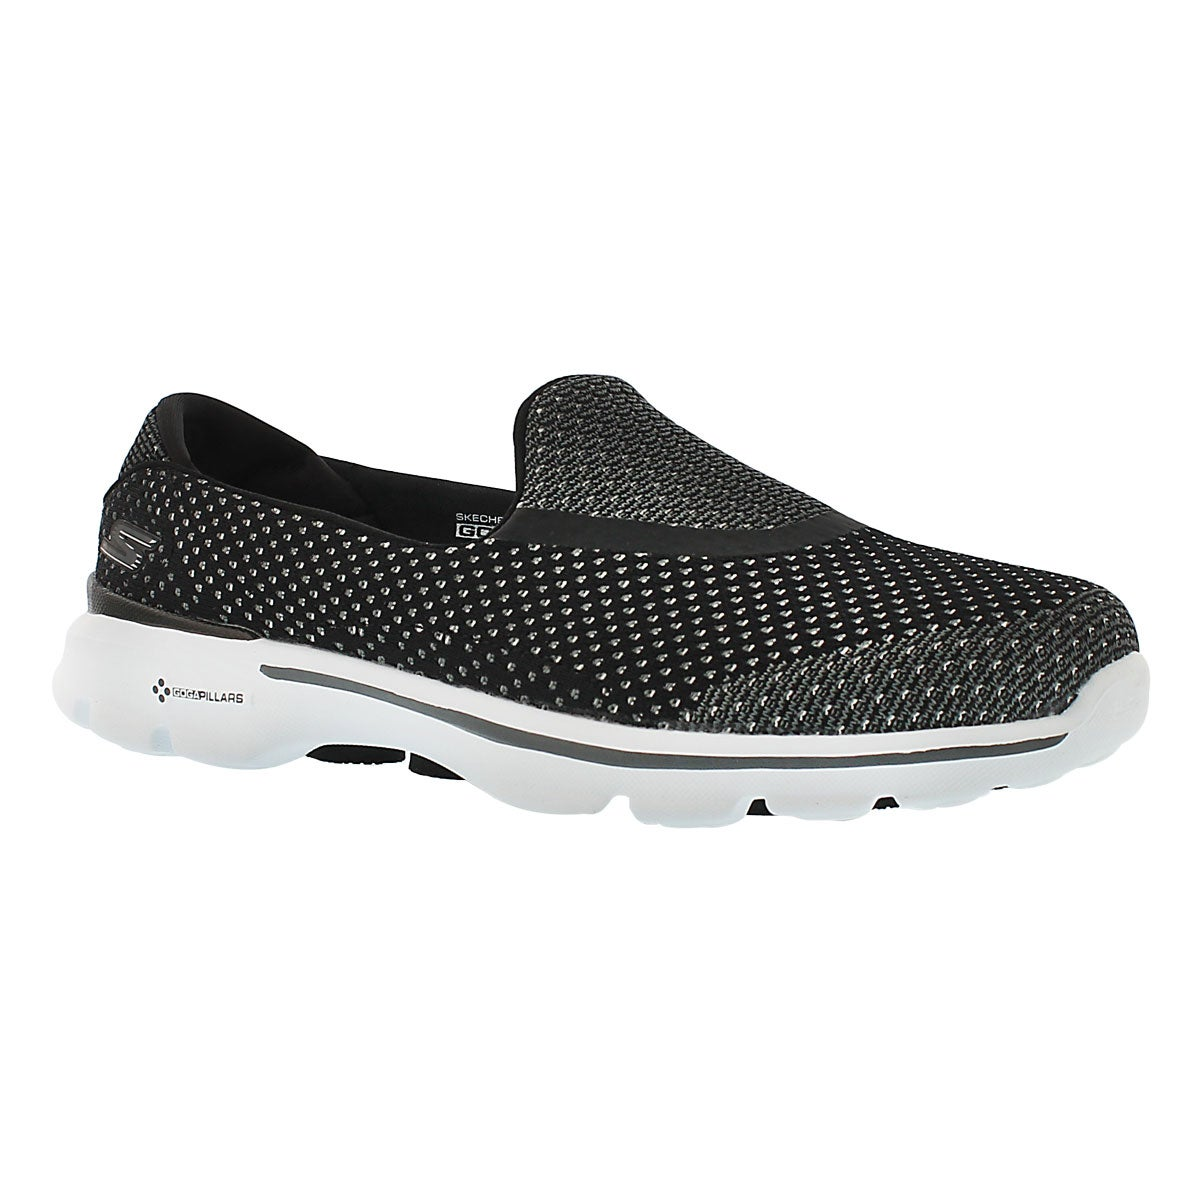 Women's GOwalk 3 black slip on sneakers